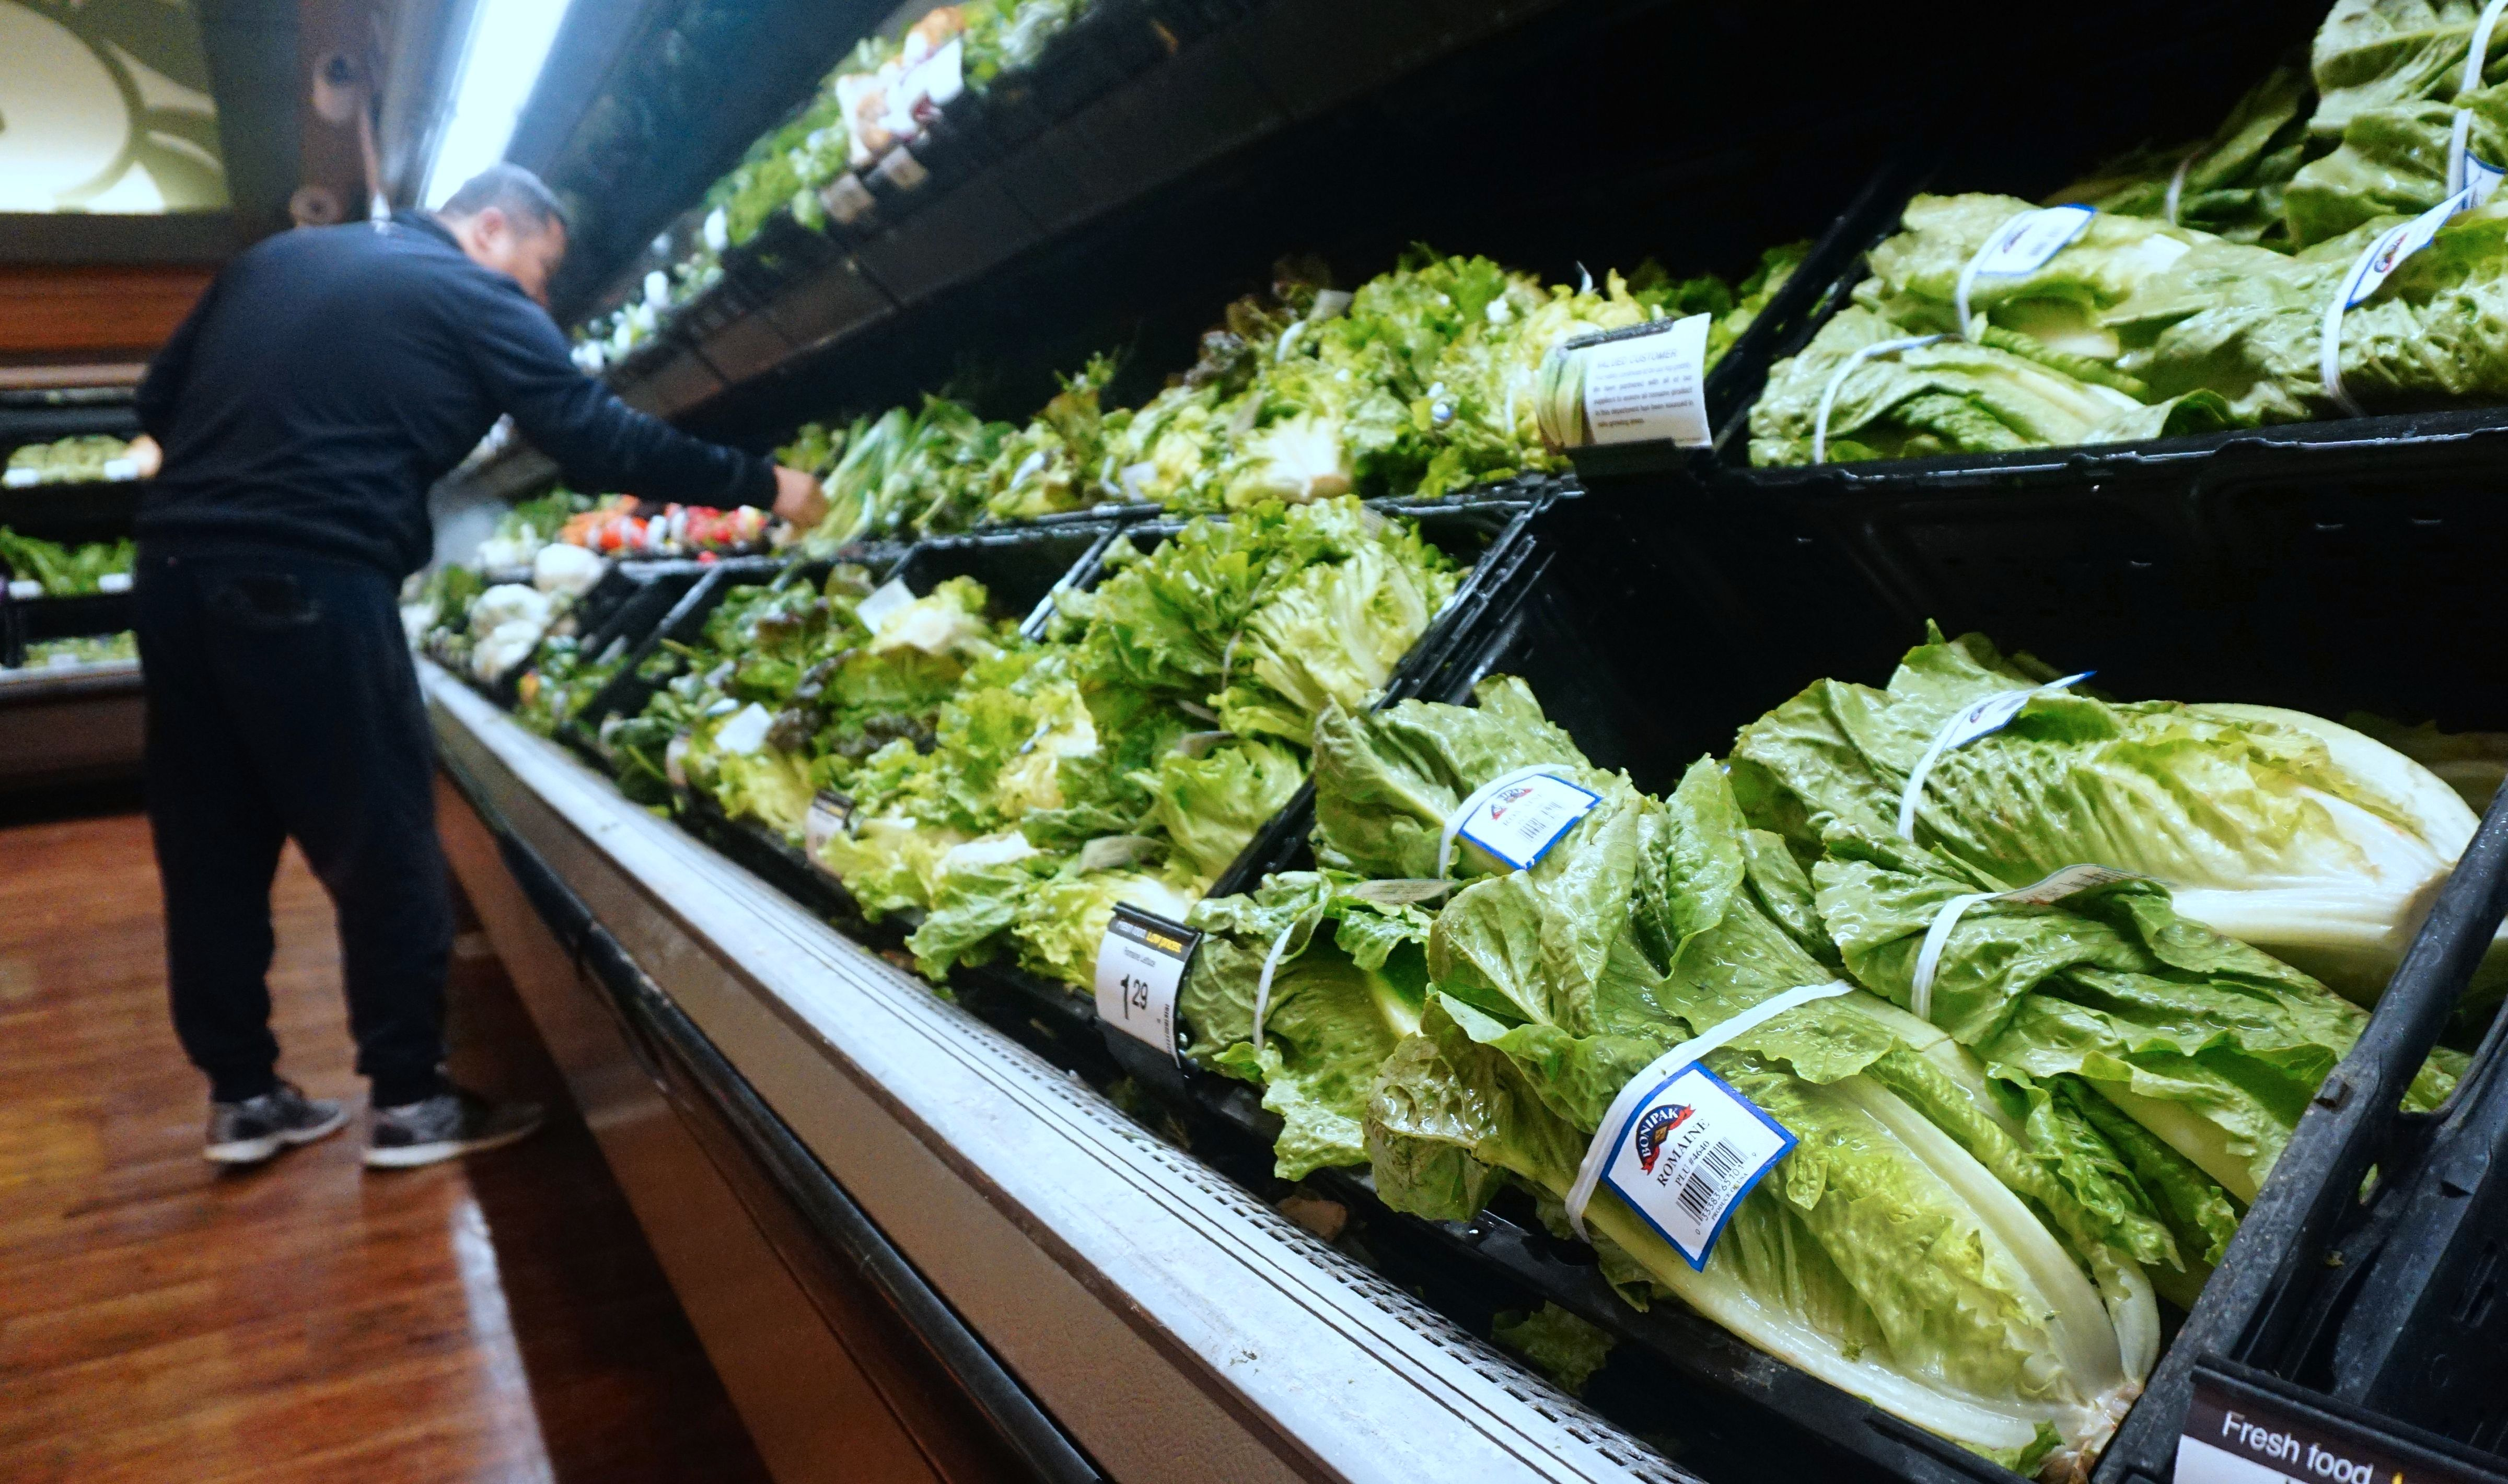 A man shops for vegetables beside Romaine lettuce stocked and for sale at a supermarket in Los Angeles, California on May 2, 2018, where the first death from an E Coli contaminated Romaine lettuce outbreak was reported. (Photo by Frederic J. BROWN / AFP)        (Photo credit should read FREDERIC J. BROWN/AFP/Getty Images)